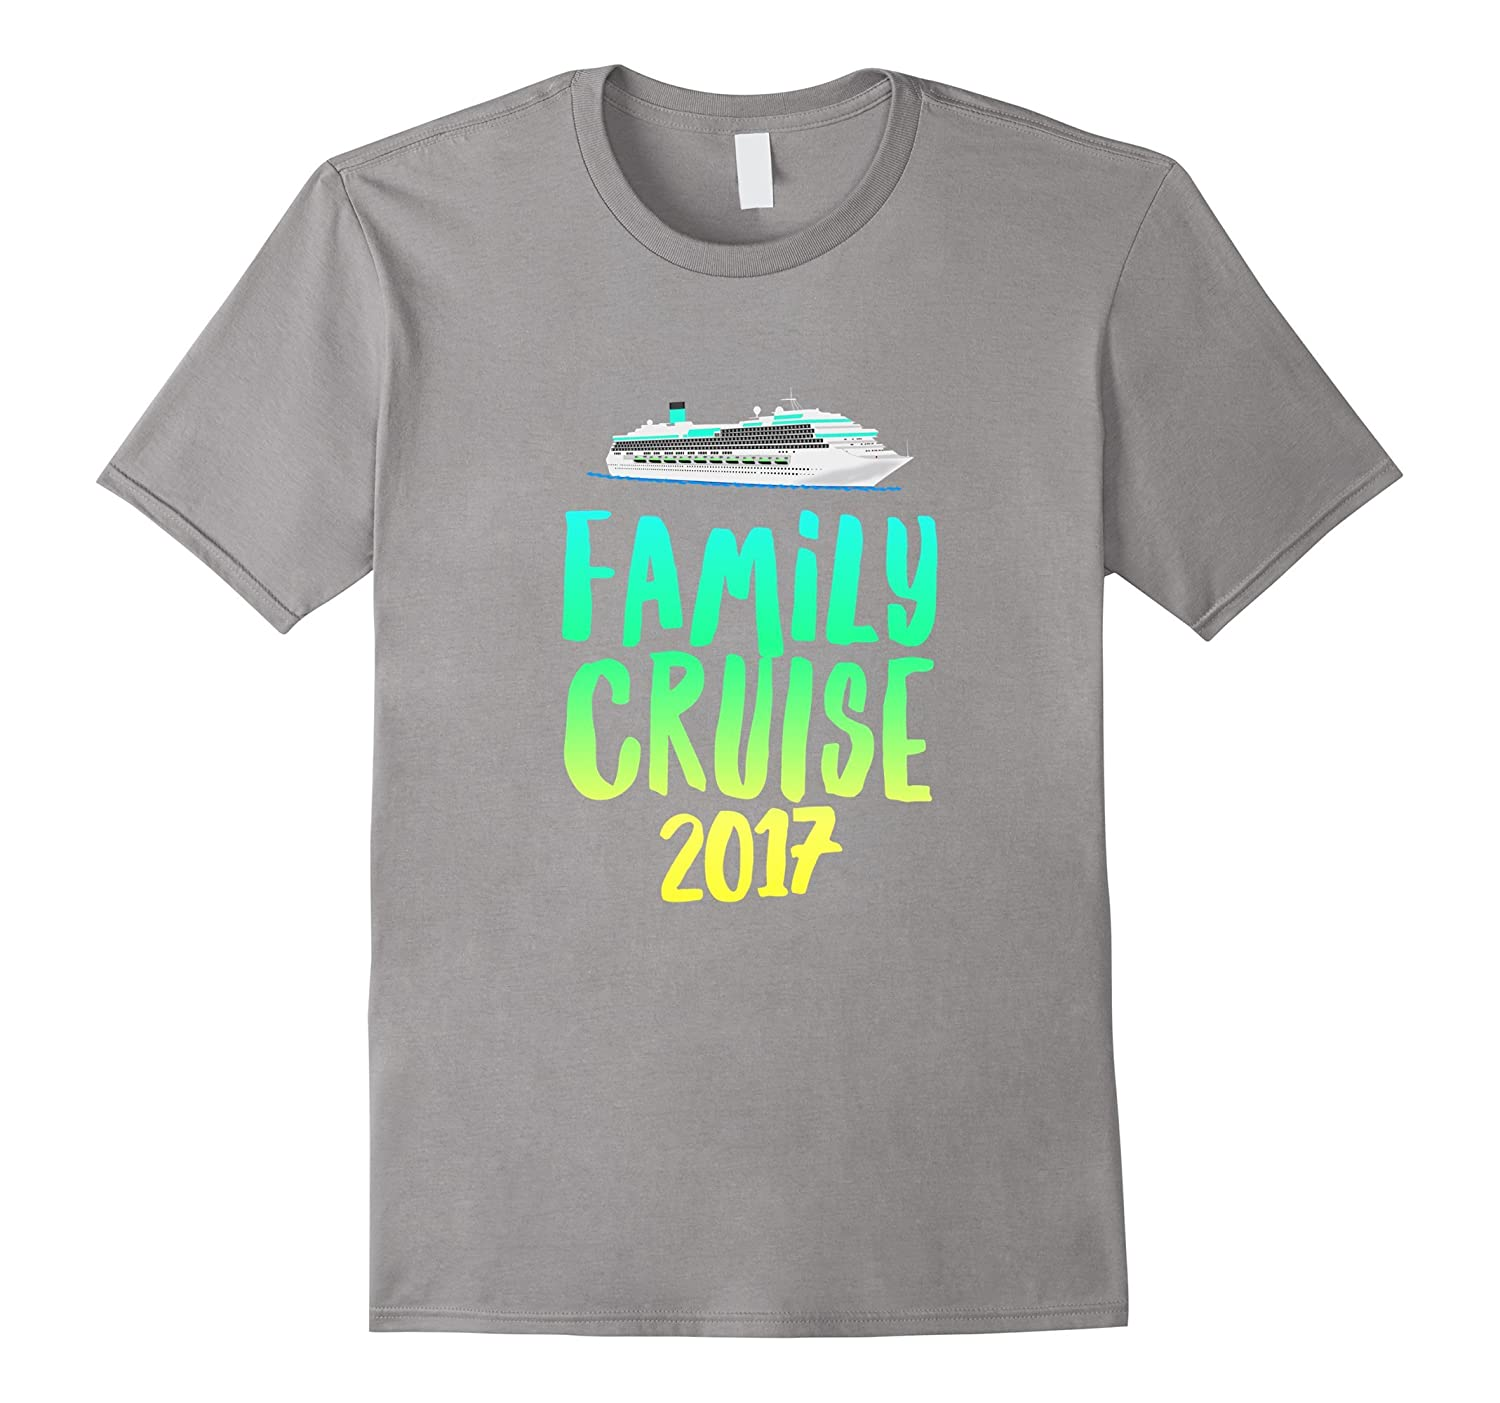 Family Cruise 2017 awesome summer vacation gift t-shirt